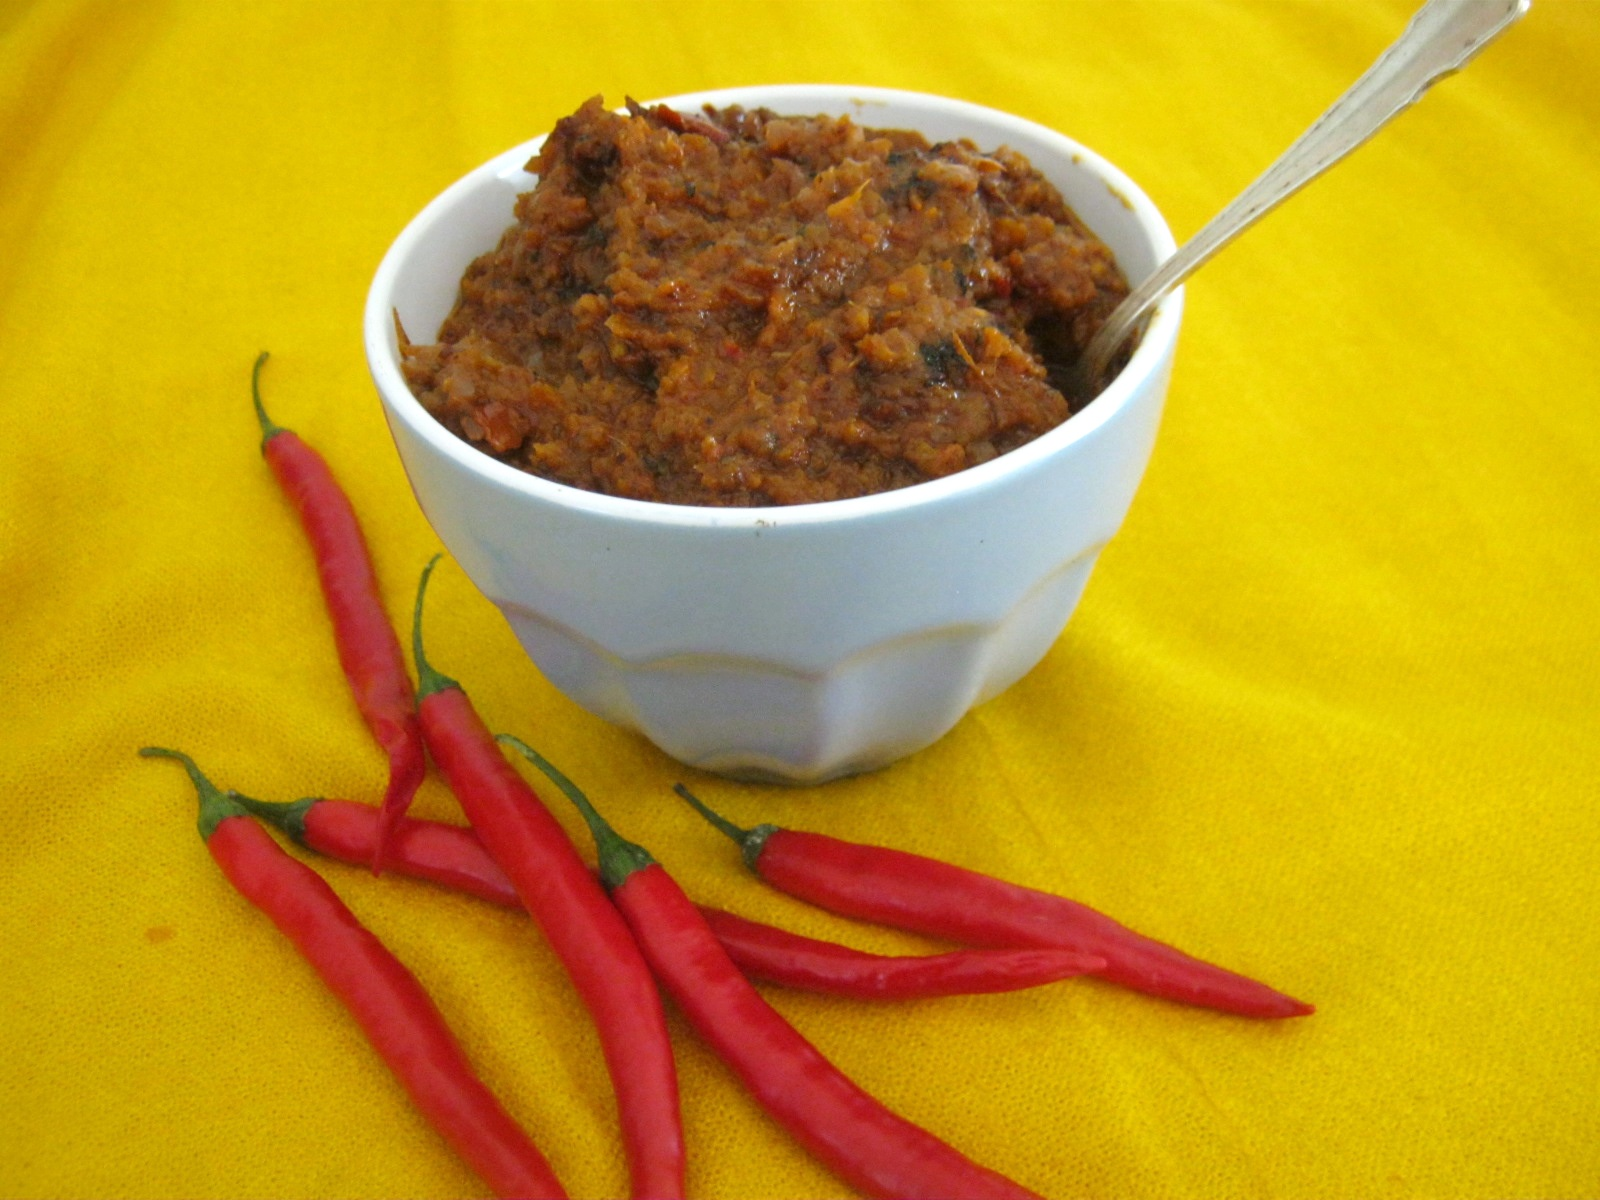 Shito - Hot Ghanaian Pepper Sauce with dried shrimps and dried fish